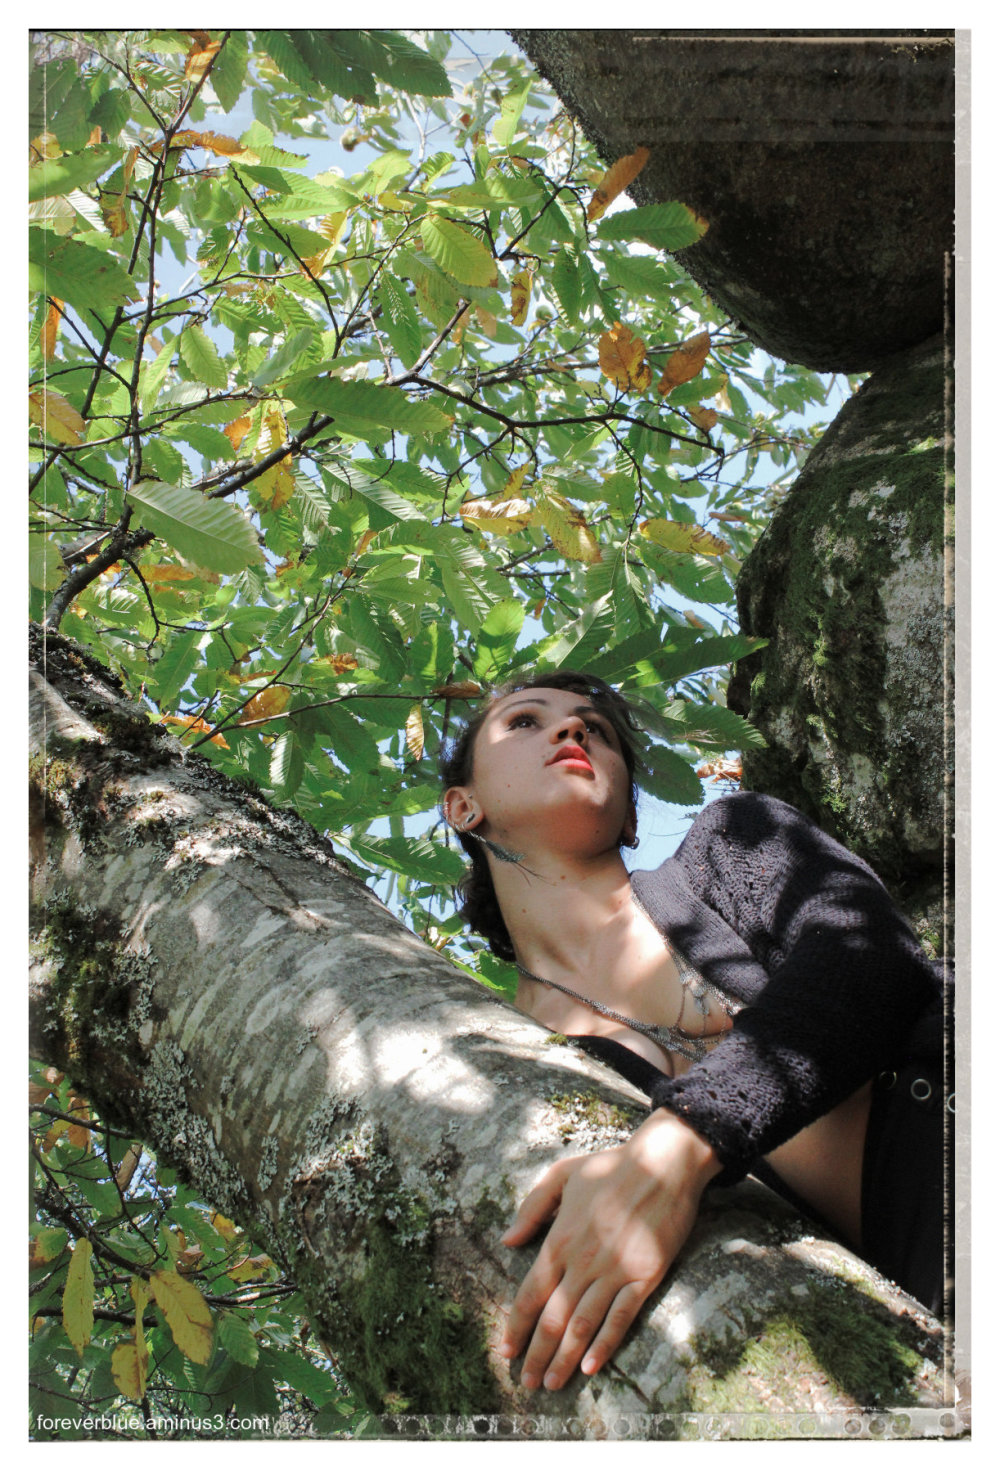 ... THE LADY DREAMING in the TREES ...